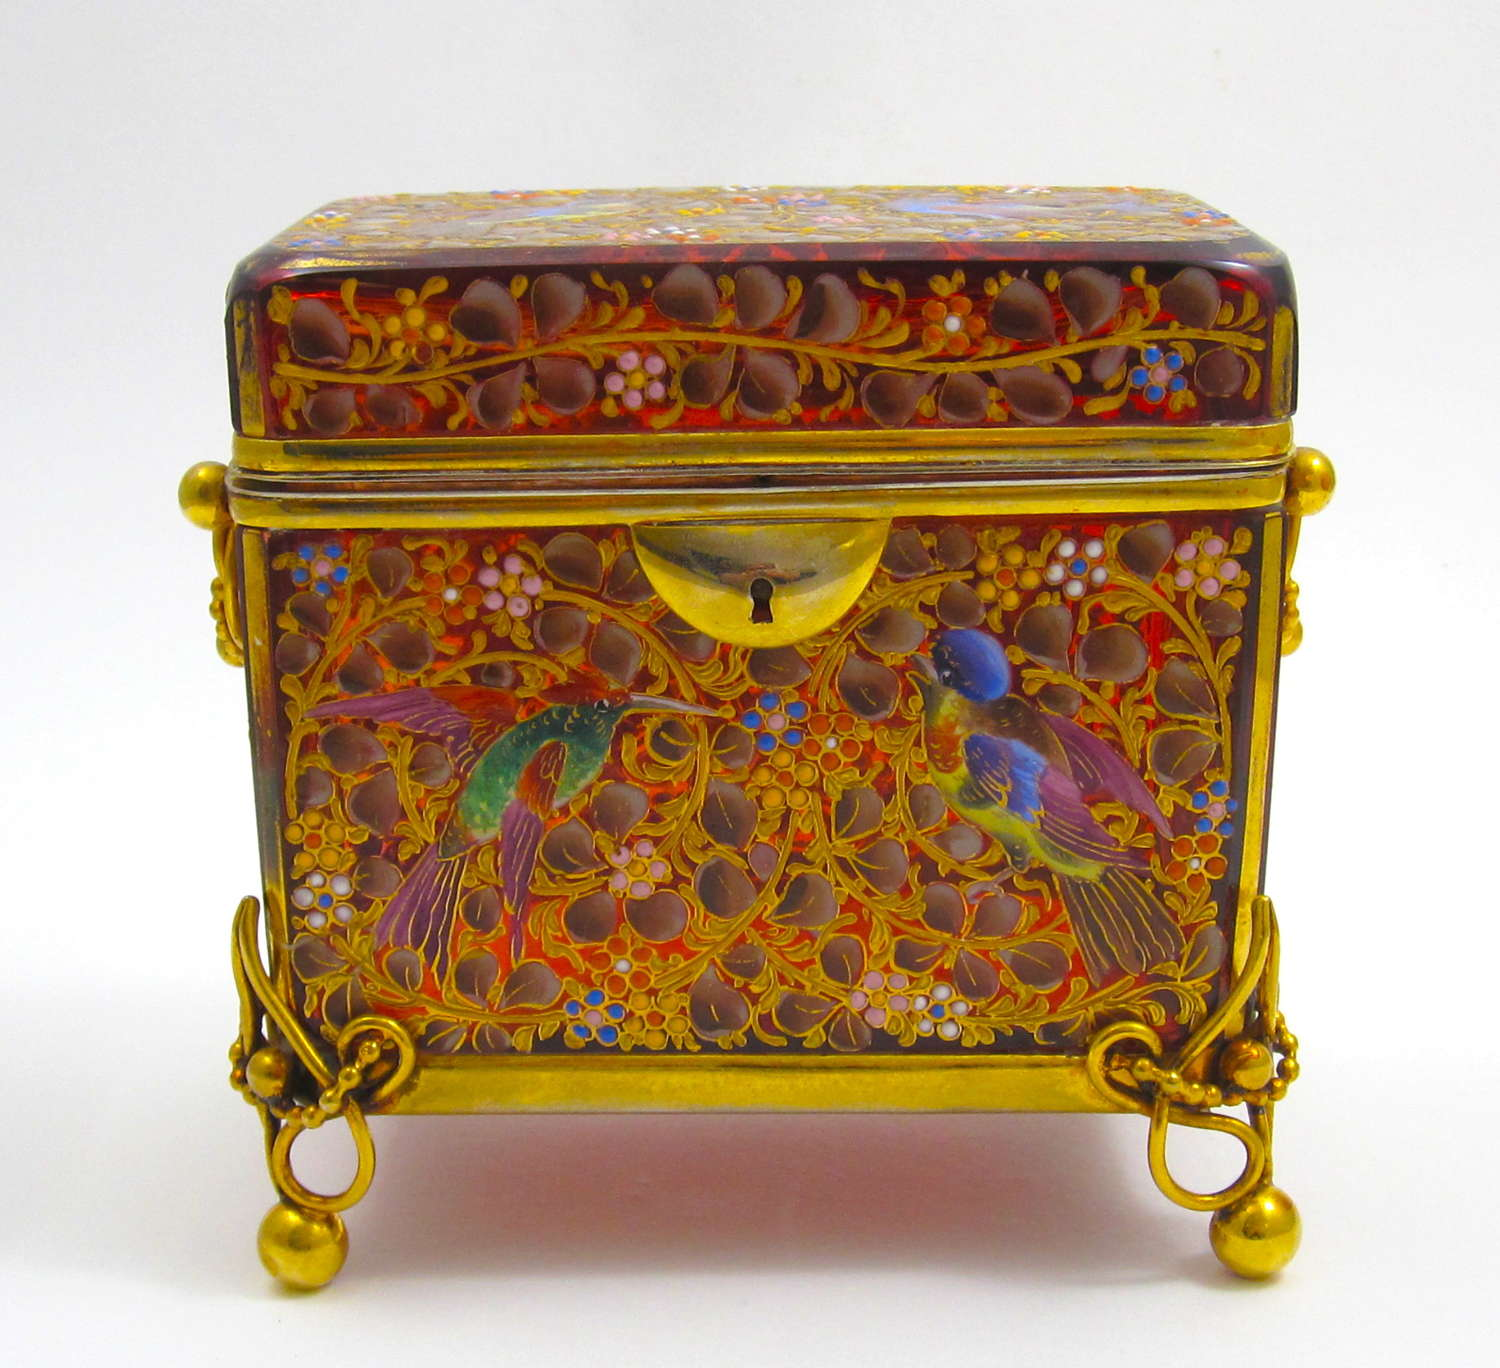 Antique Moser Casket Box Enamelled with Colourful Birds and Flowers